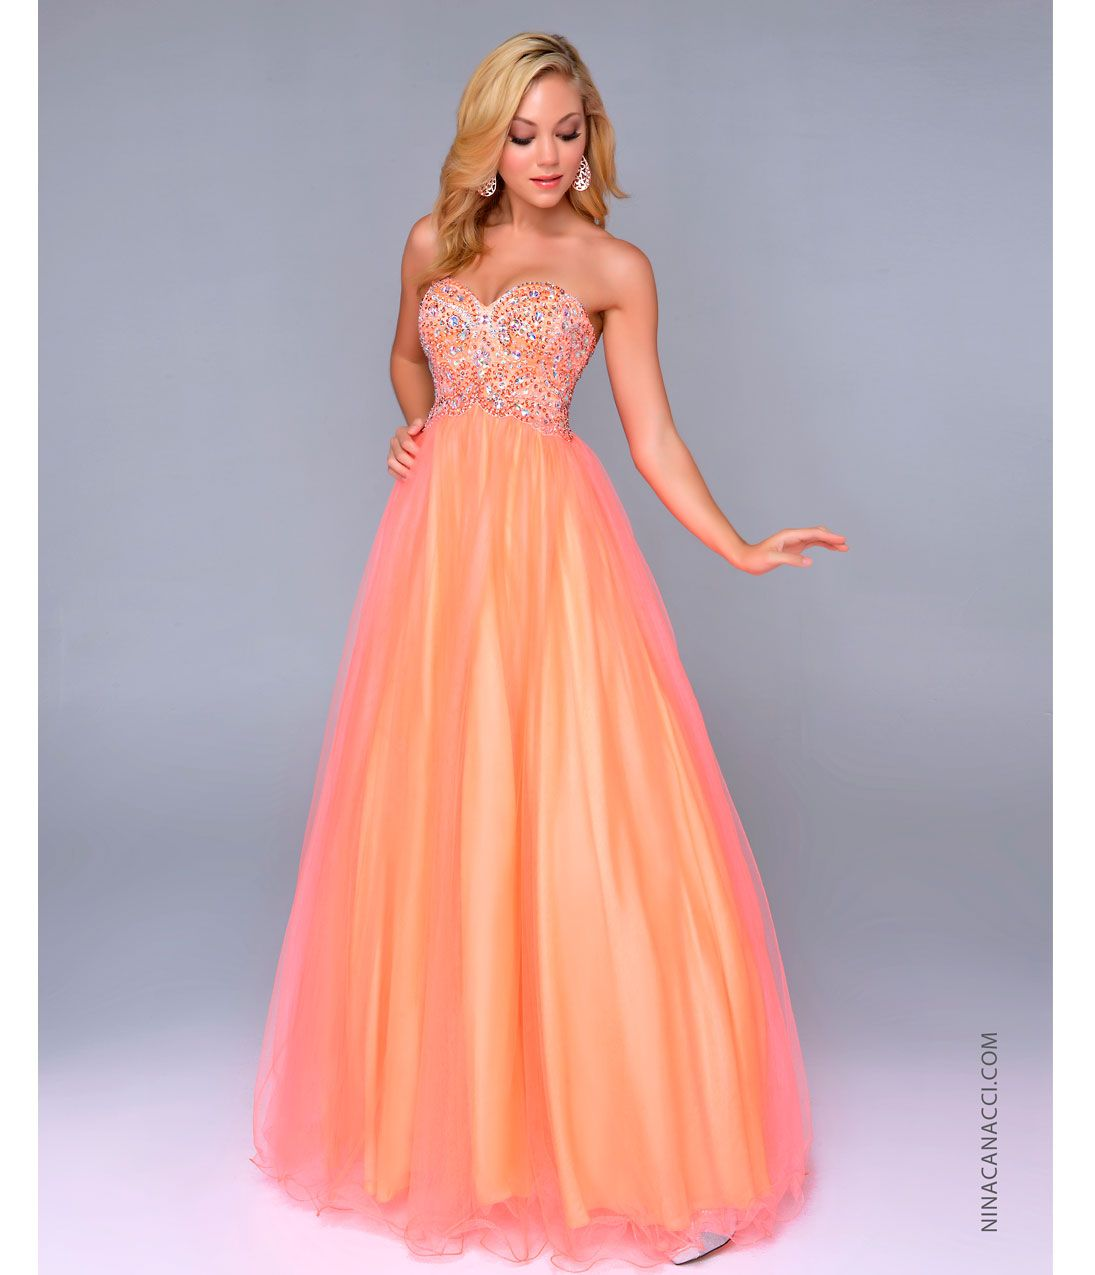 Ball gown prom dresses 2014 - Neon Orange Chiffon Beaded Bodice Ball Gown Uniquevintage Prom